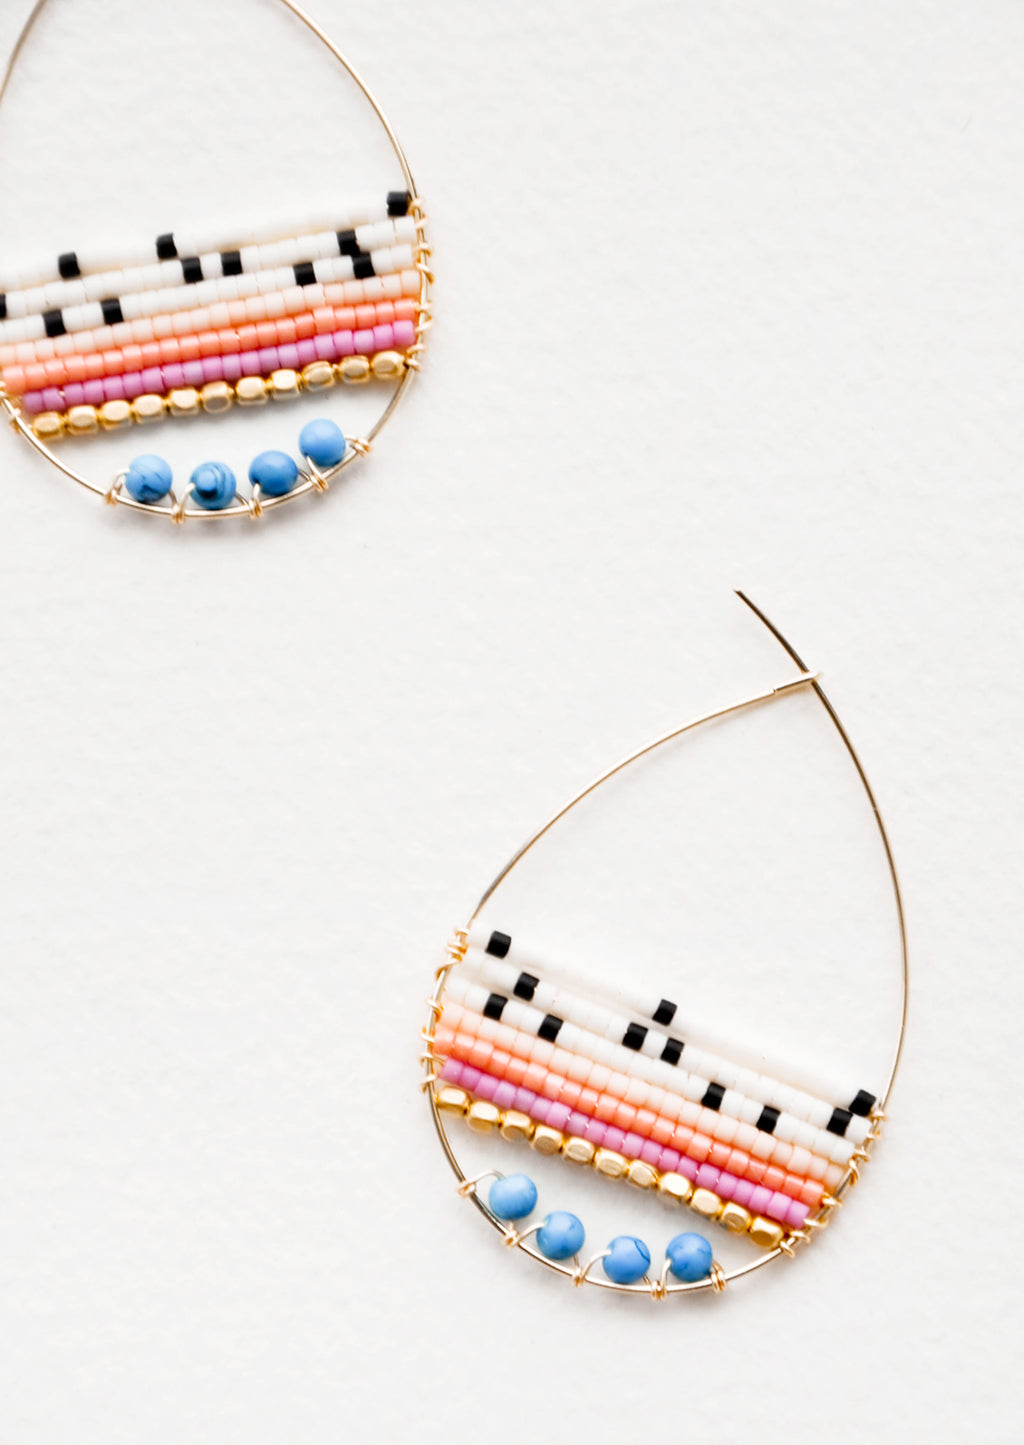 Ivory / Turquoise Multi: Teardrop shaped hoop earrings in yellow gold with multicolored ivory and turquoise beaded bars across.